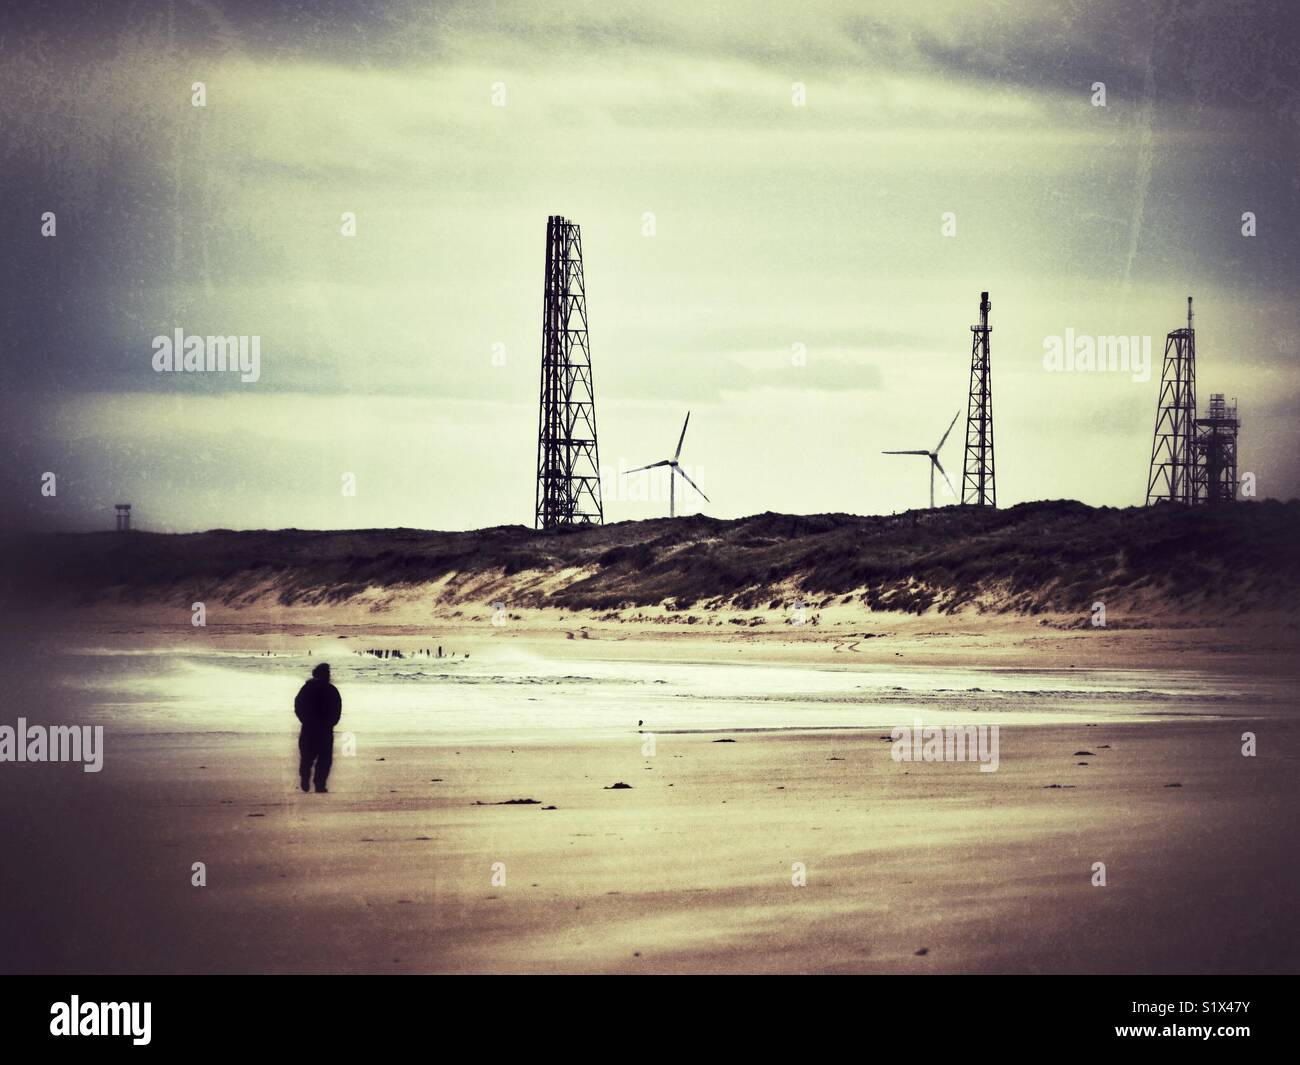 Beach view with industrial background of drilling and wind turbines. Stock Photo